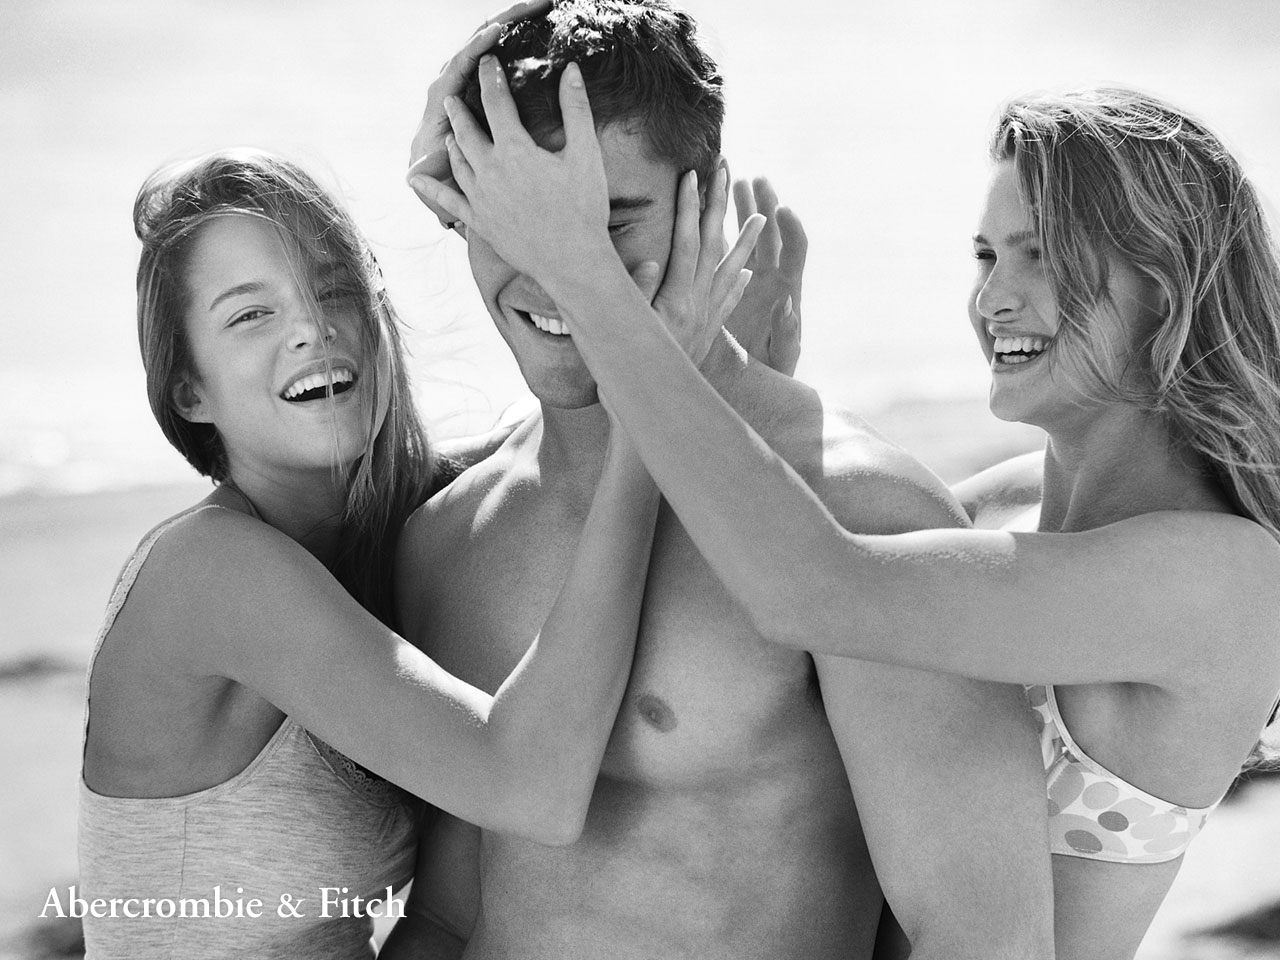 abercrombie-and-fitch.jpg